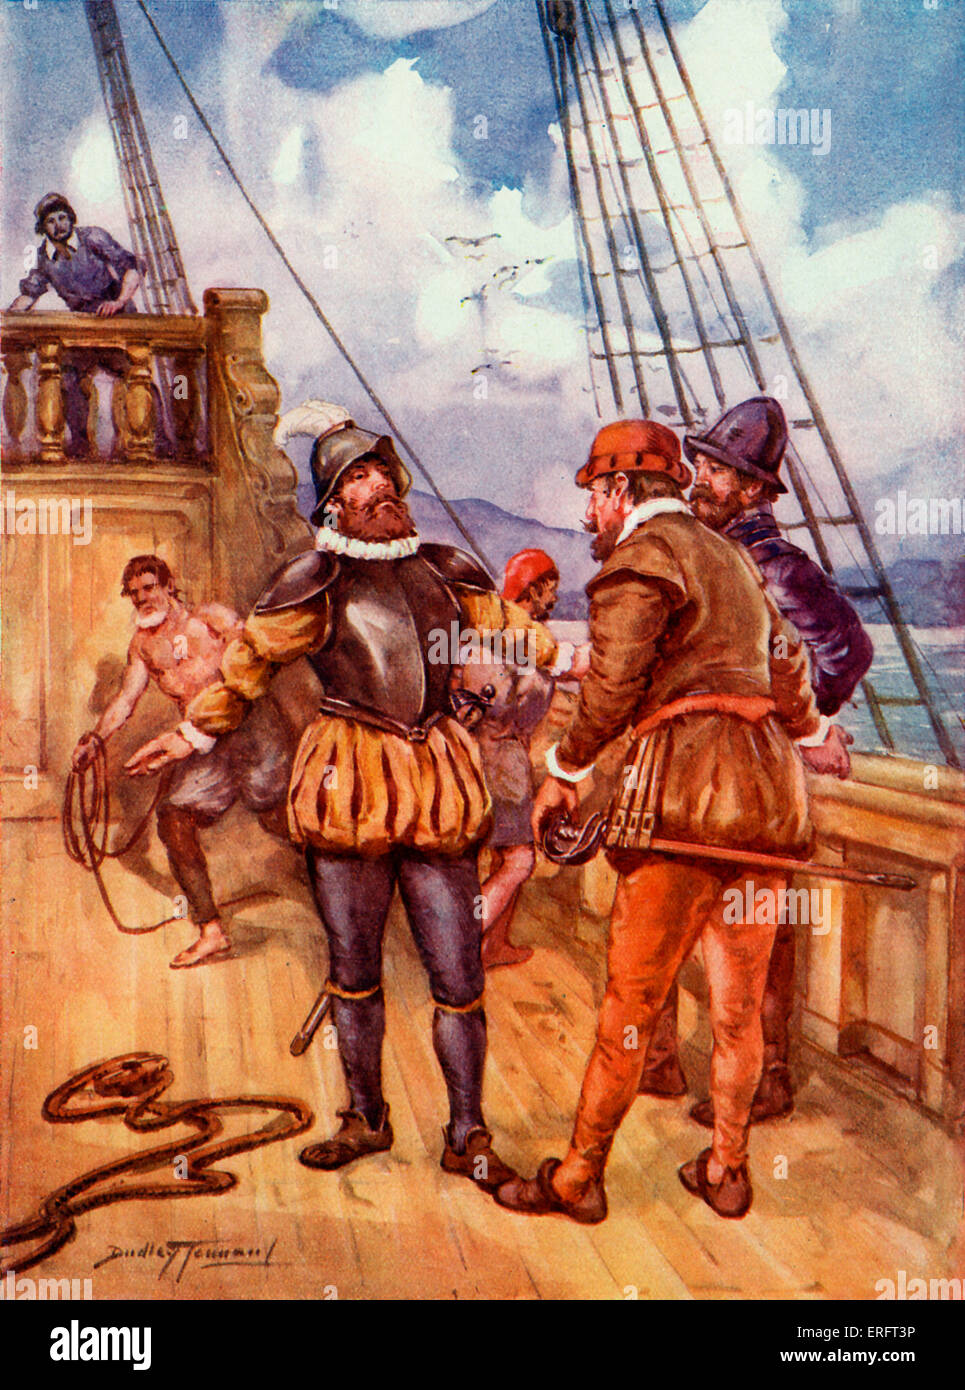 Ferdinand Magellan. Caption reads: 'The fearless sailor who linked two oceans'. Painting by Dudley Tennant. - Stock Image